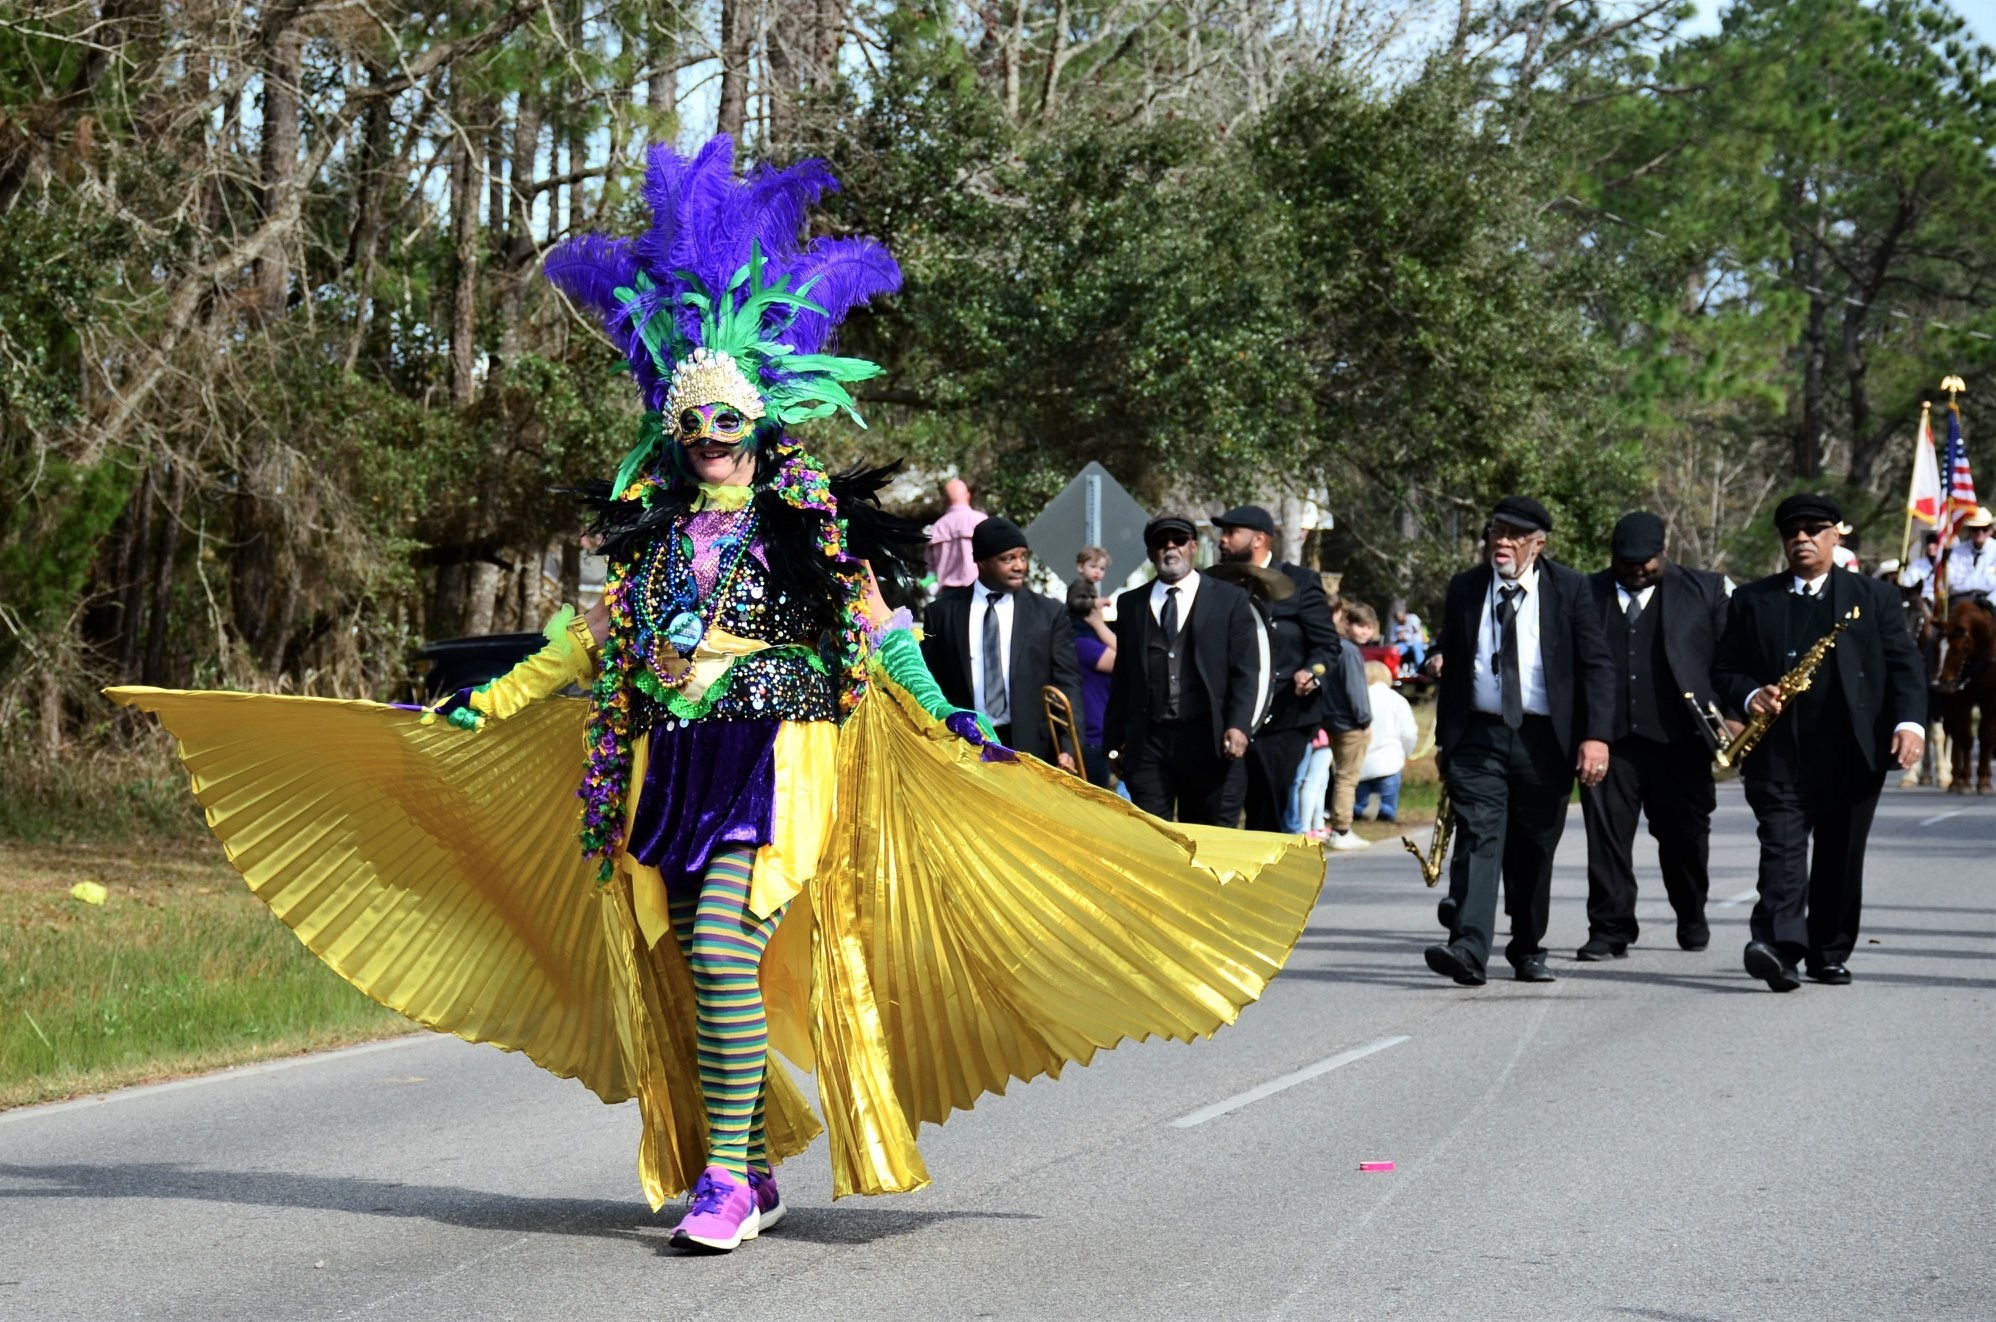 woman covered in beads and feathers celebrates by walking the mardi gras parade